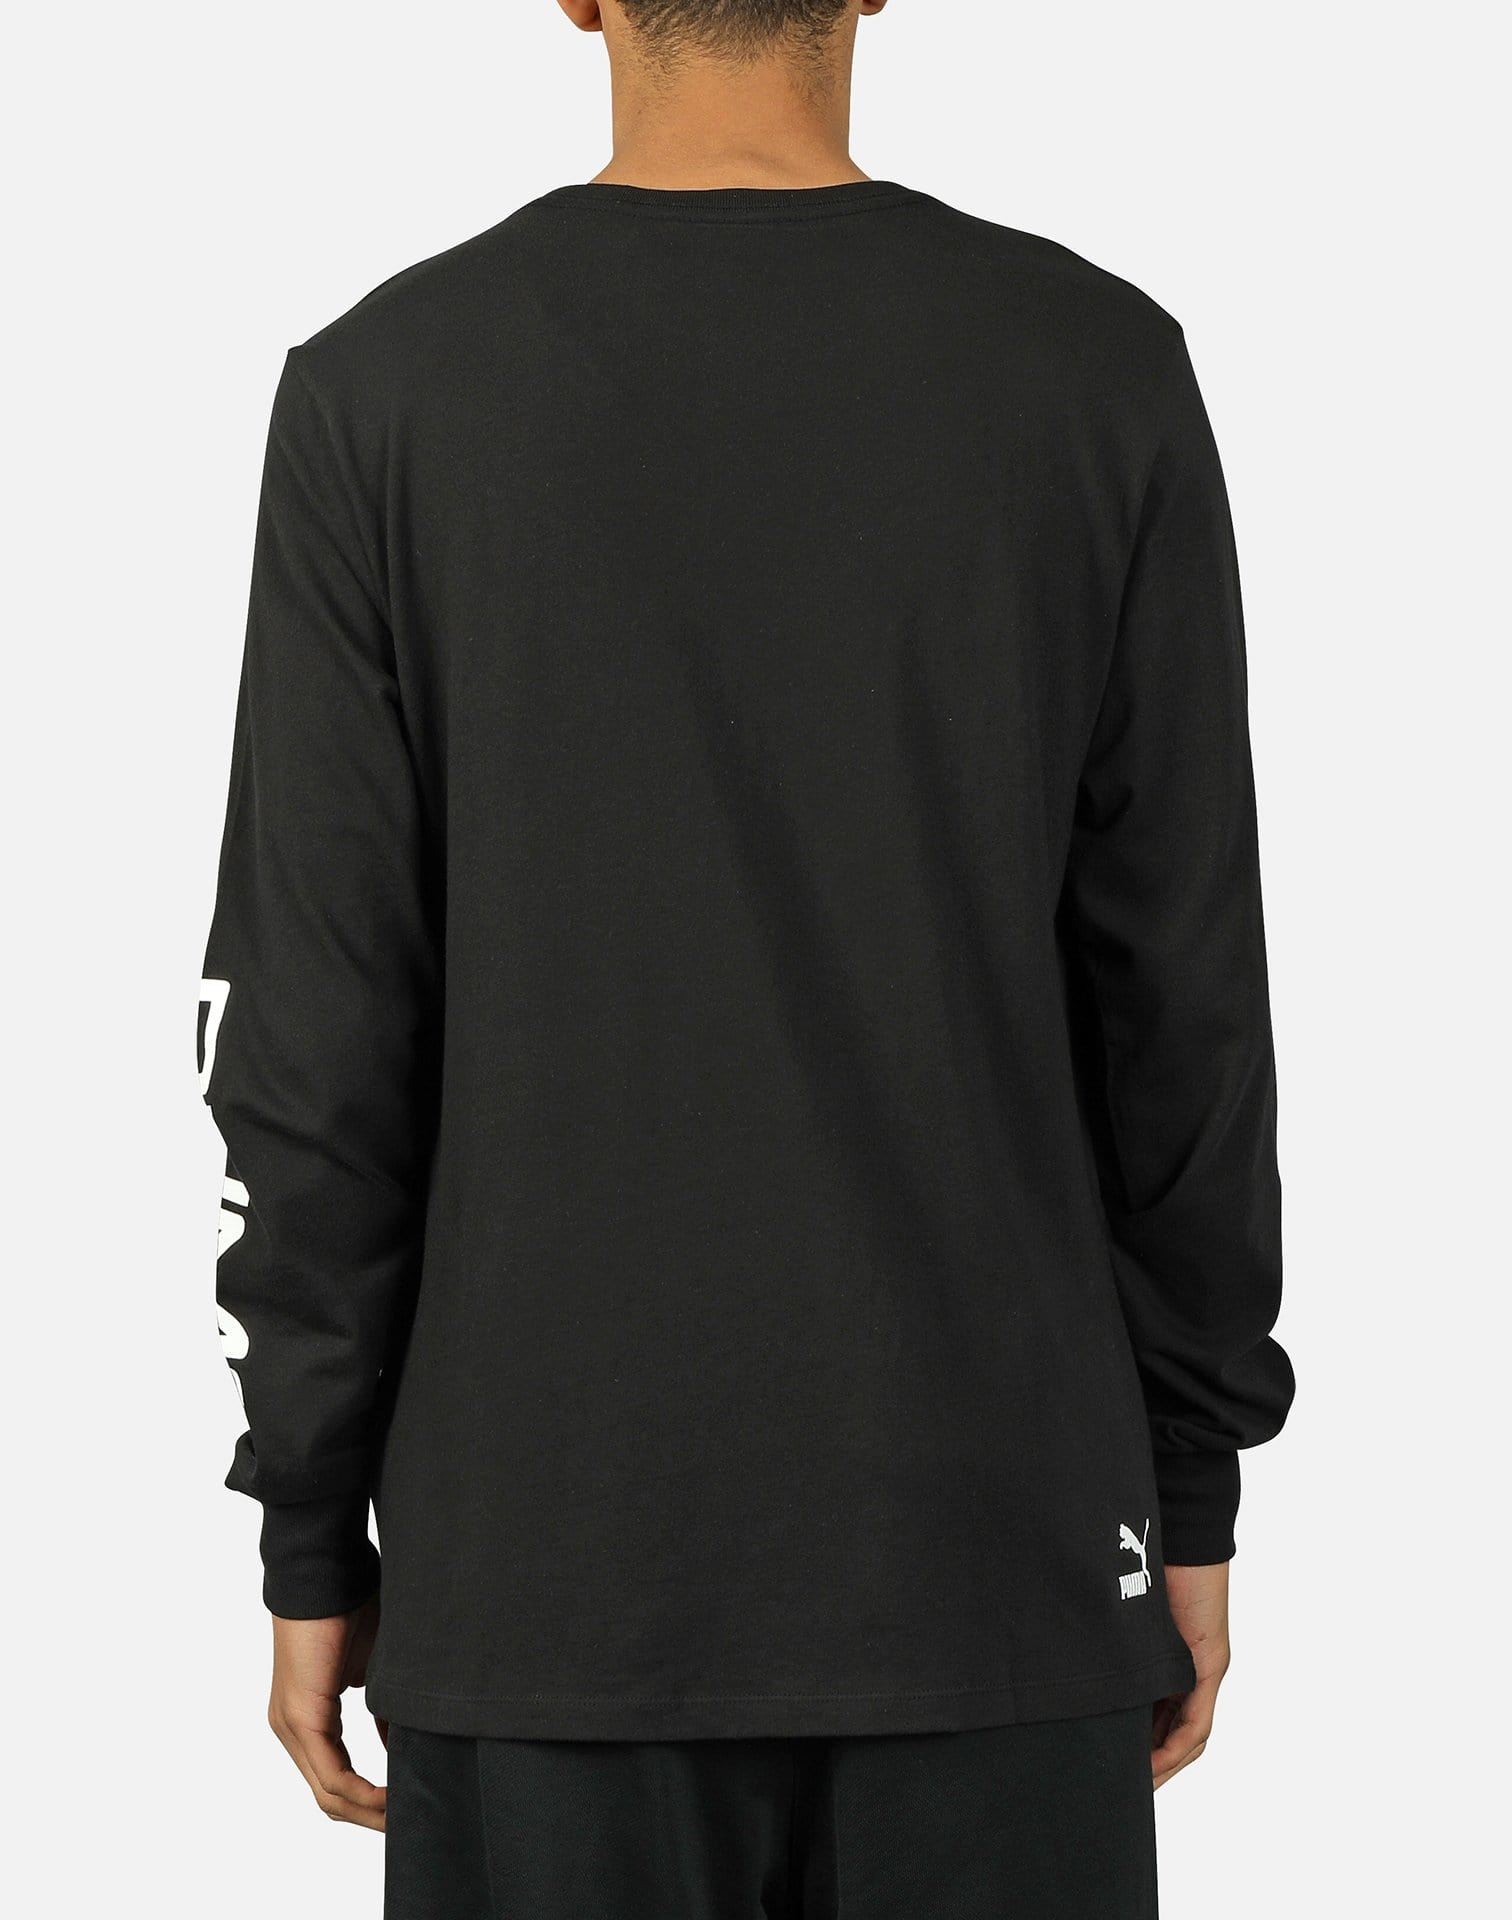 RS-X³ 'PUZZLE' LONG-SLEEVE TEE